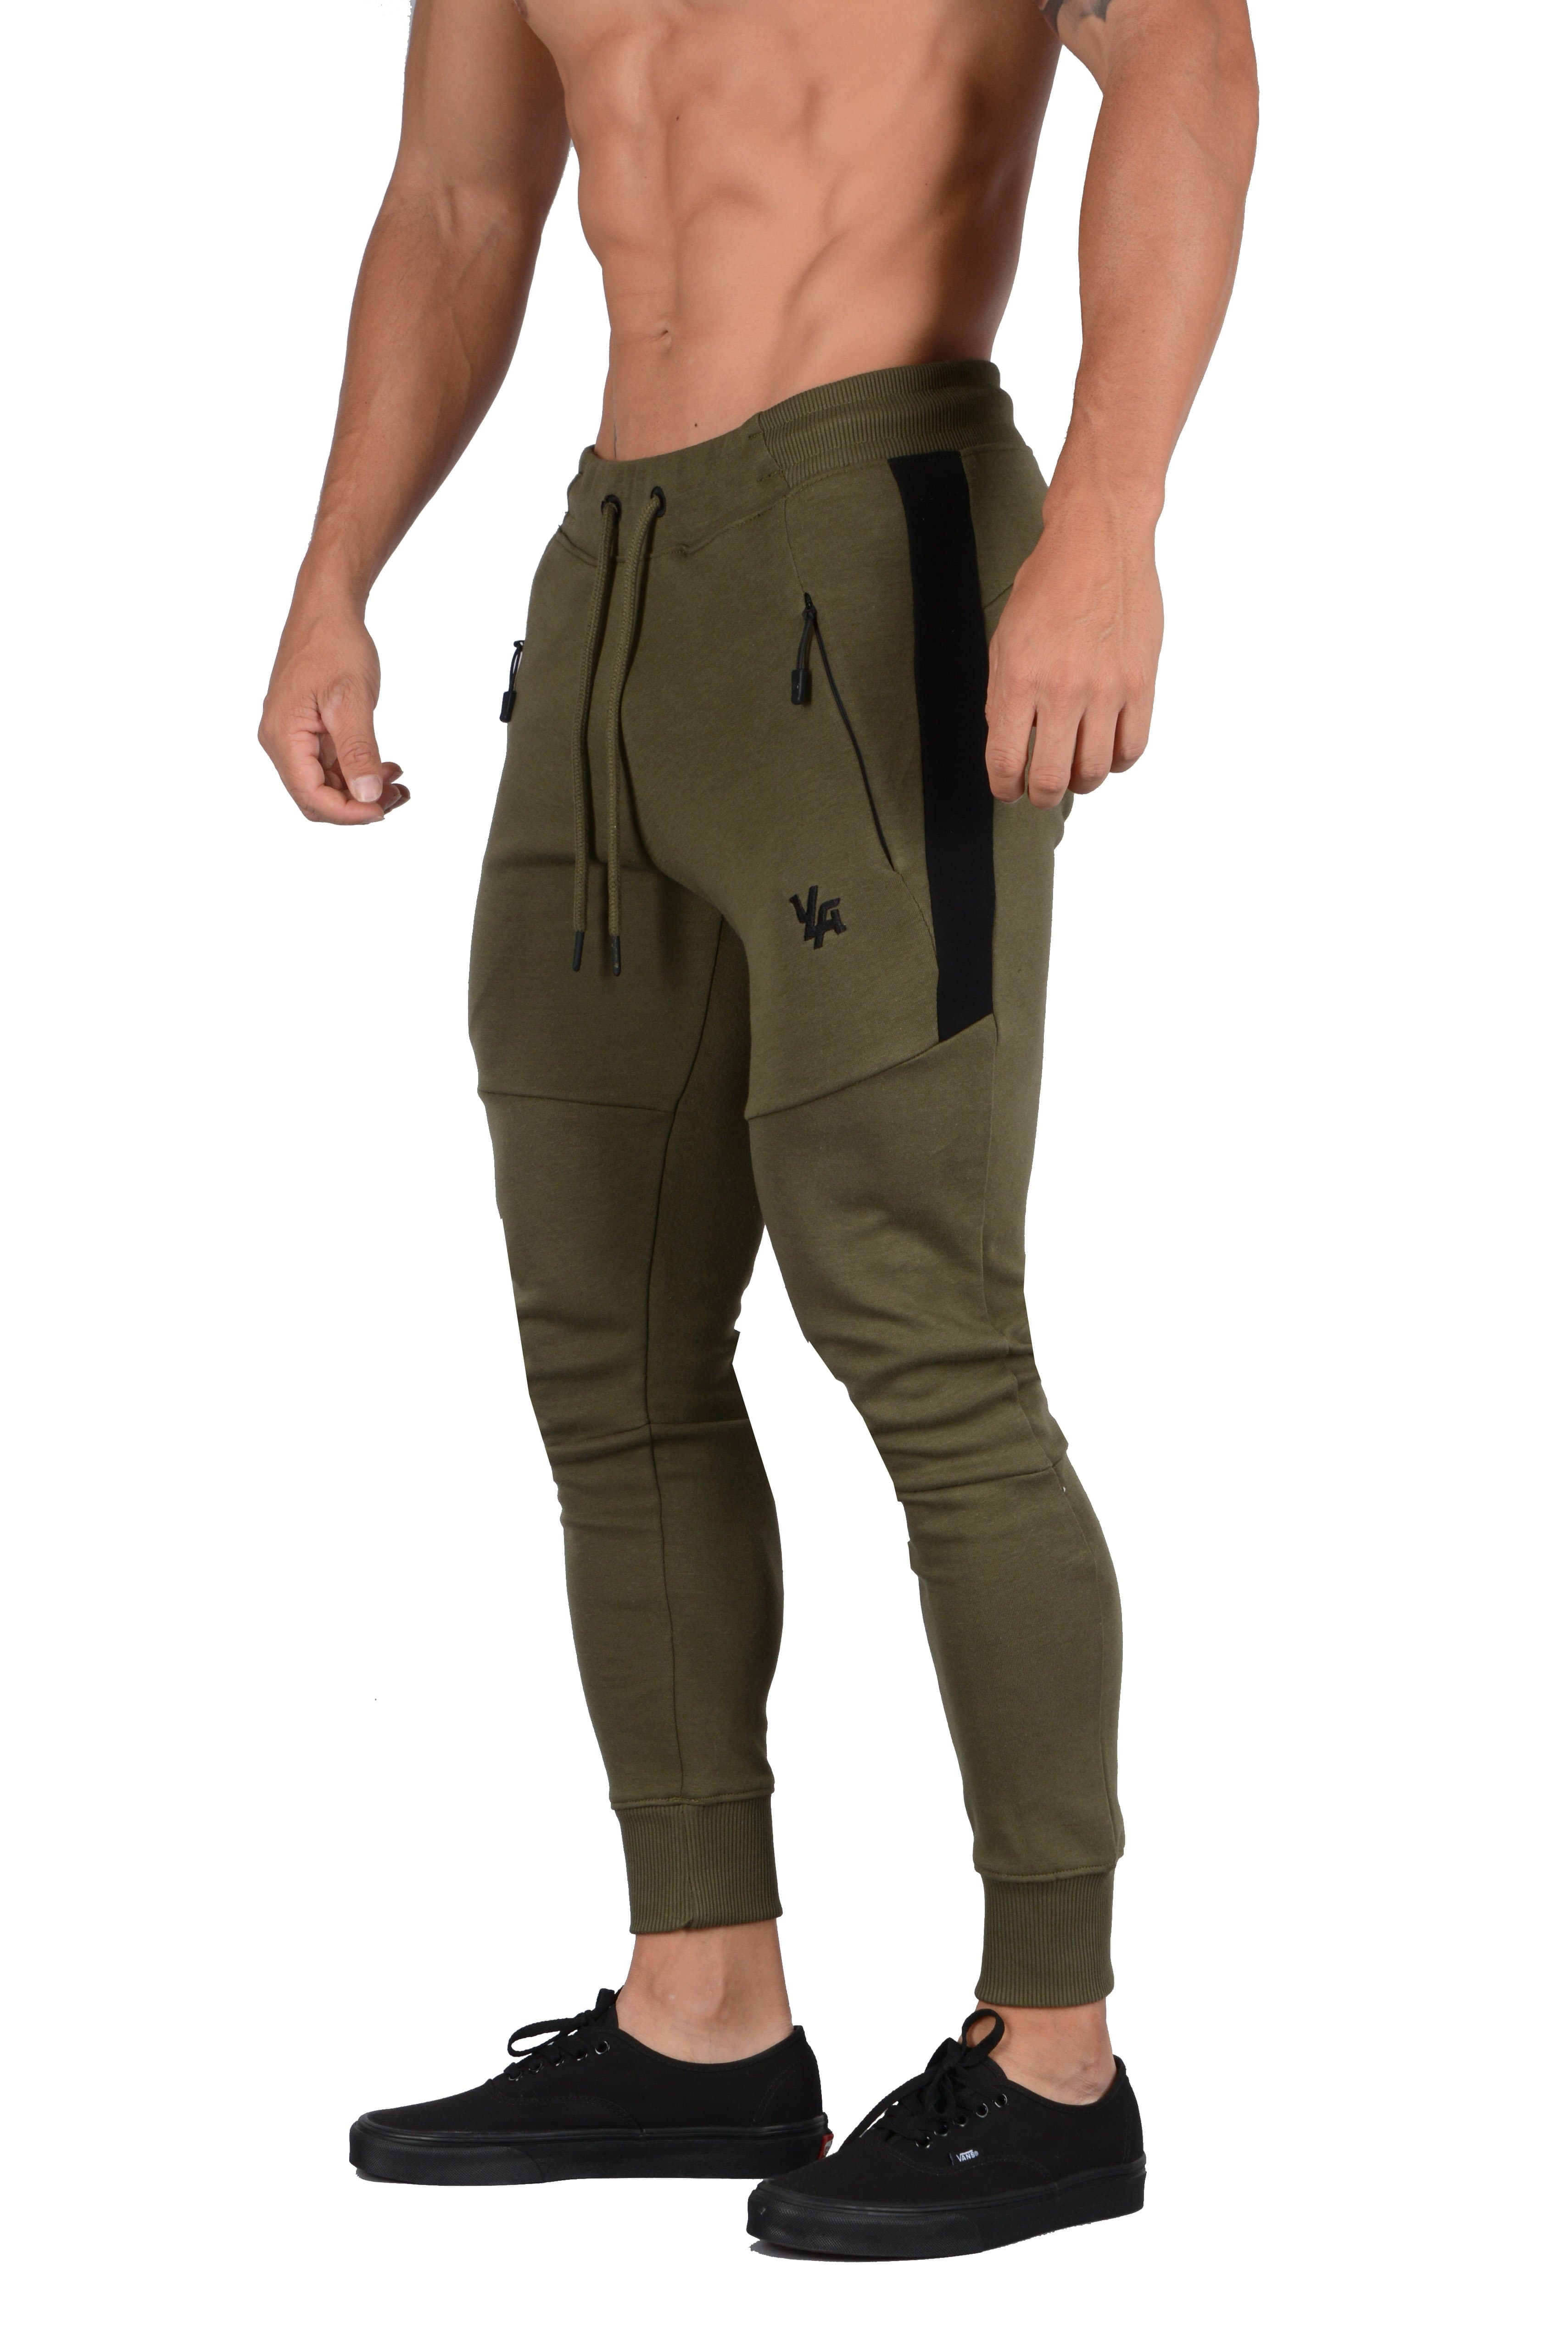 YoungLA Stripe Quad Joggers 224